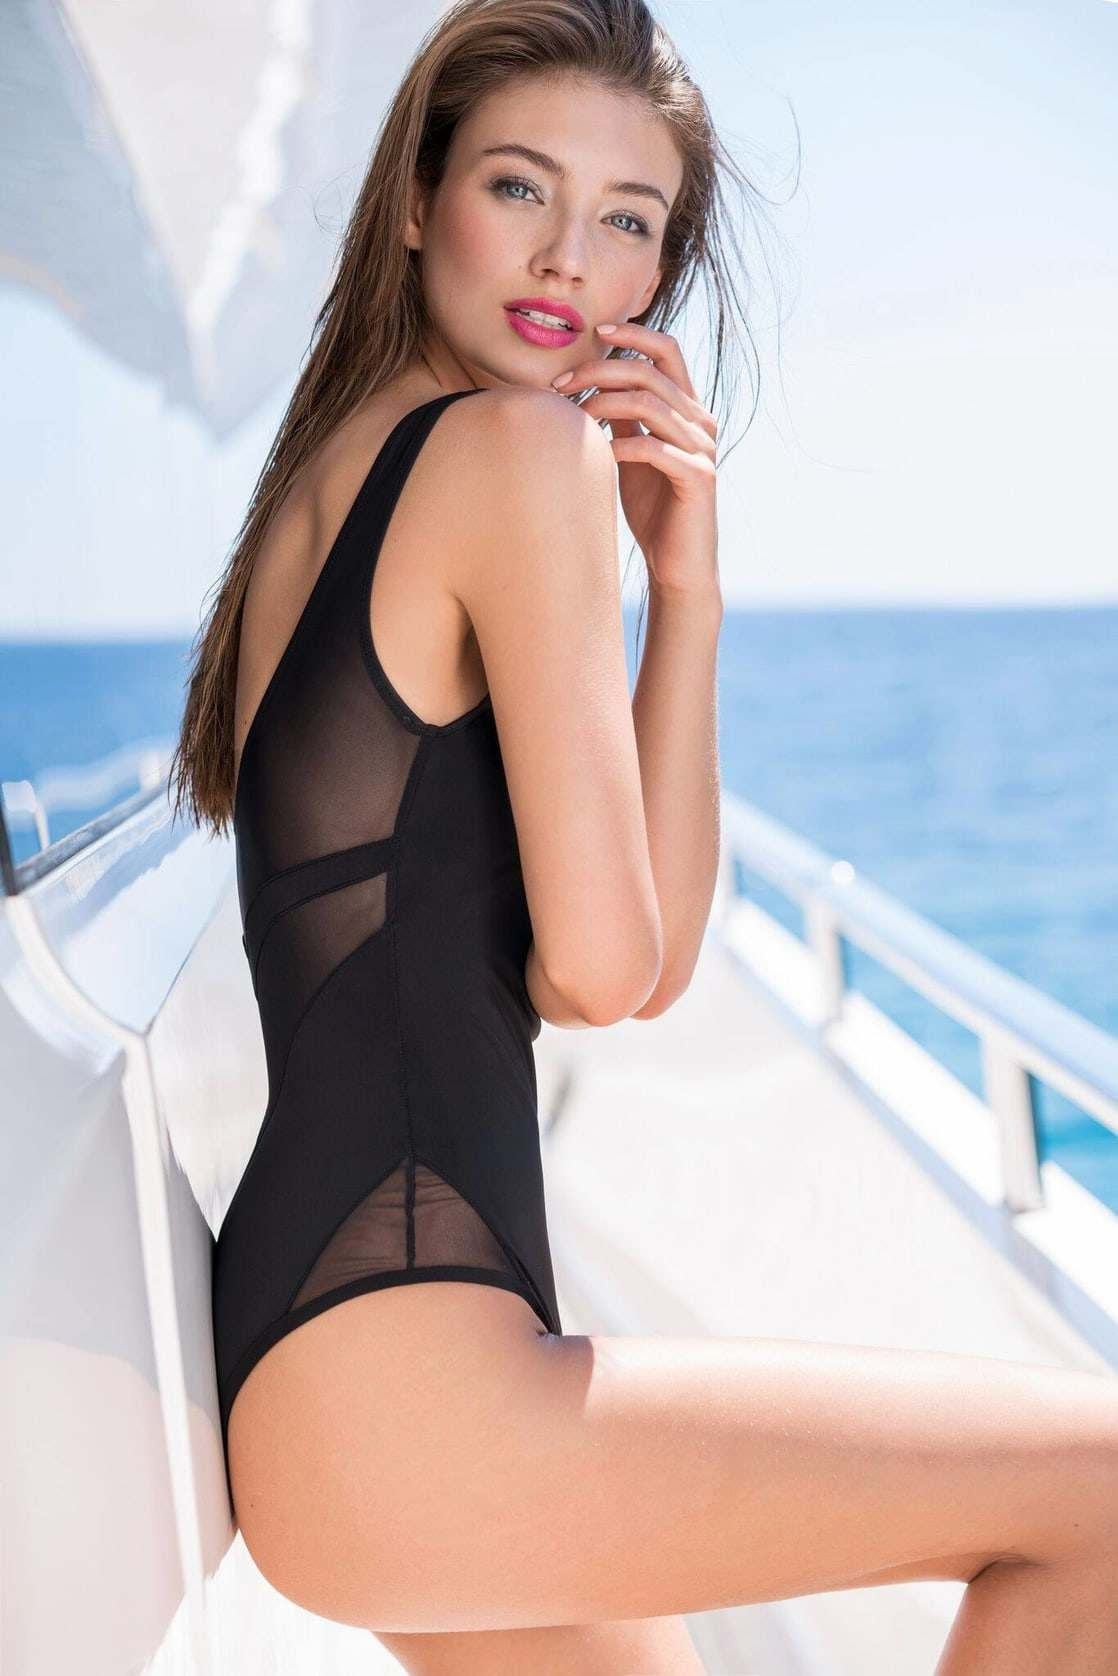 Get The Best Escort Girl Online In Mumbai In Just A Call And Have The Fun All Night